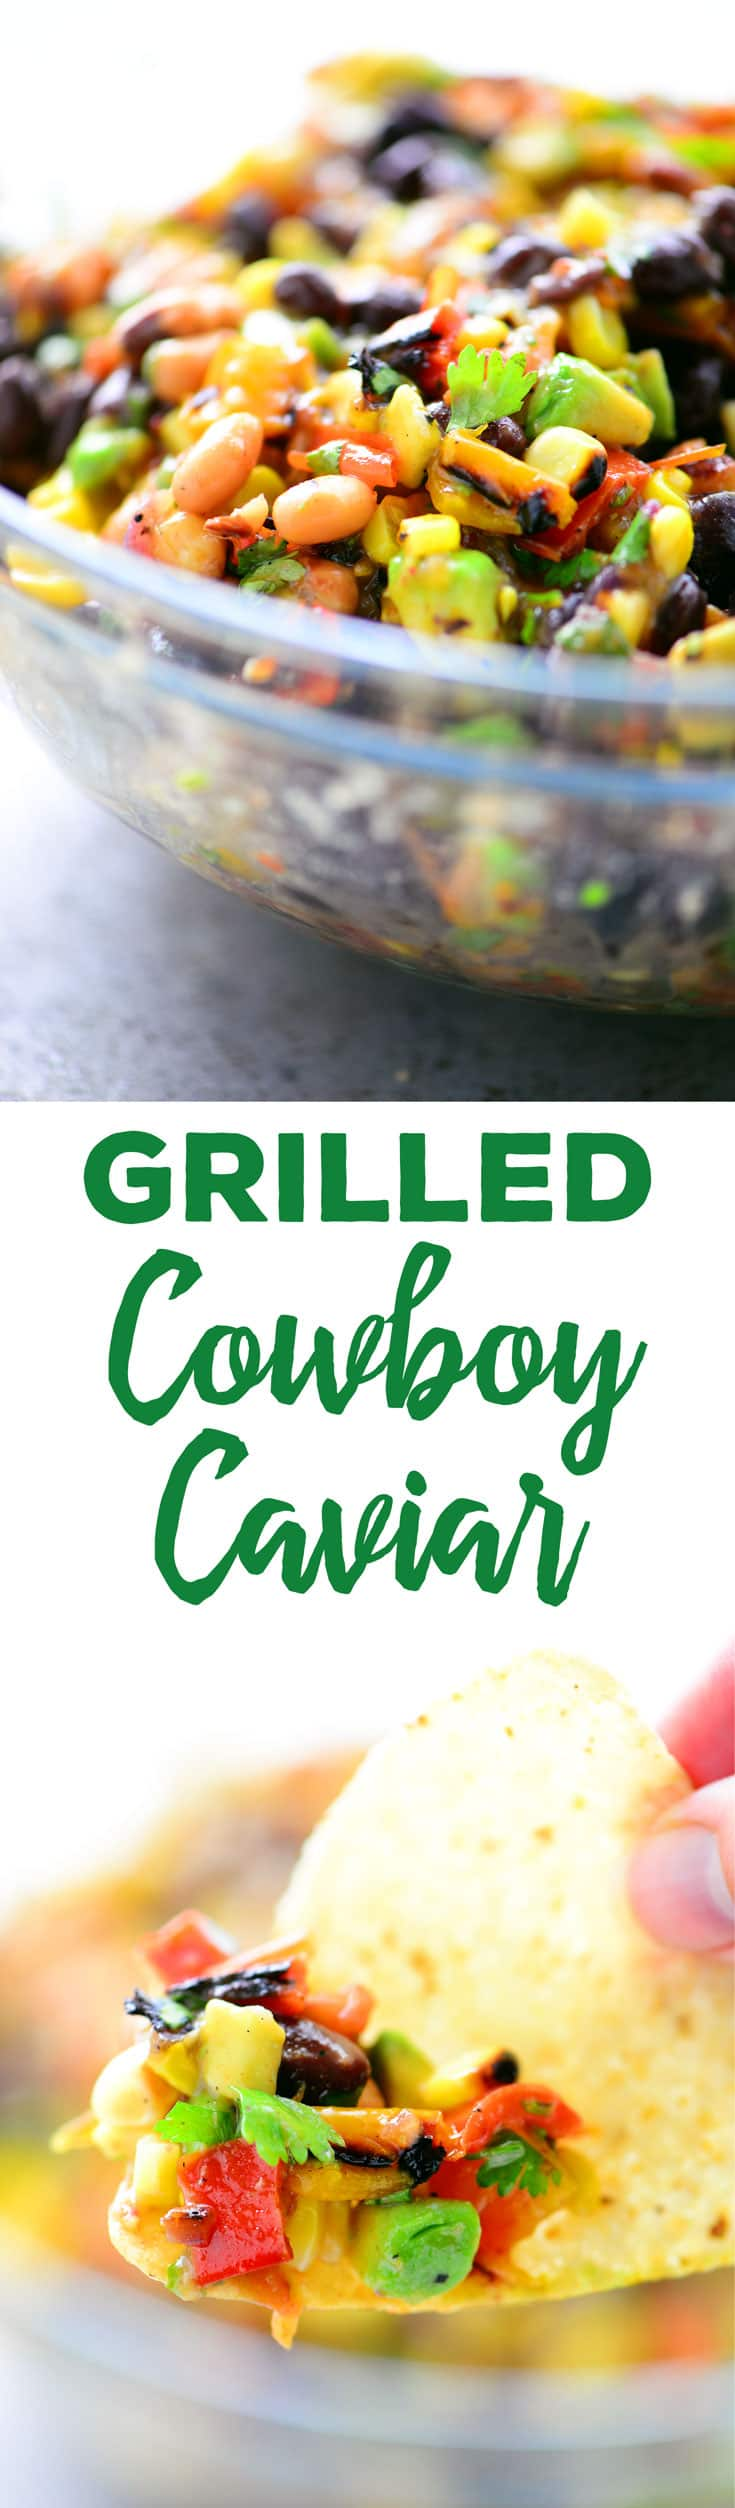 This Grilled Cowboy Caviar recipe is a healthy appetizer full of flavor and protein. The grilled veggies are a fabulous addition to this classic salsa.